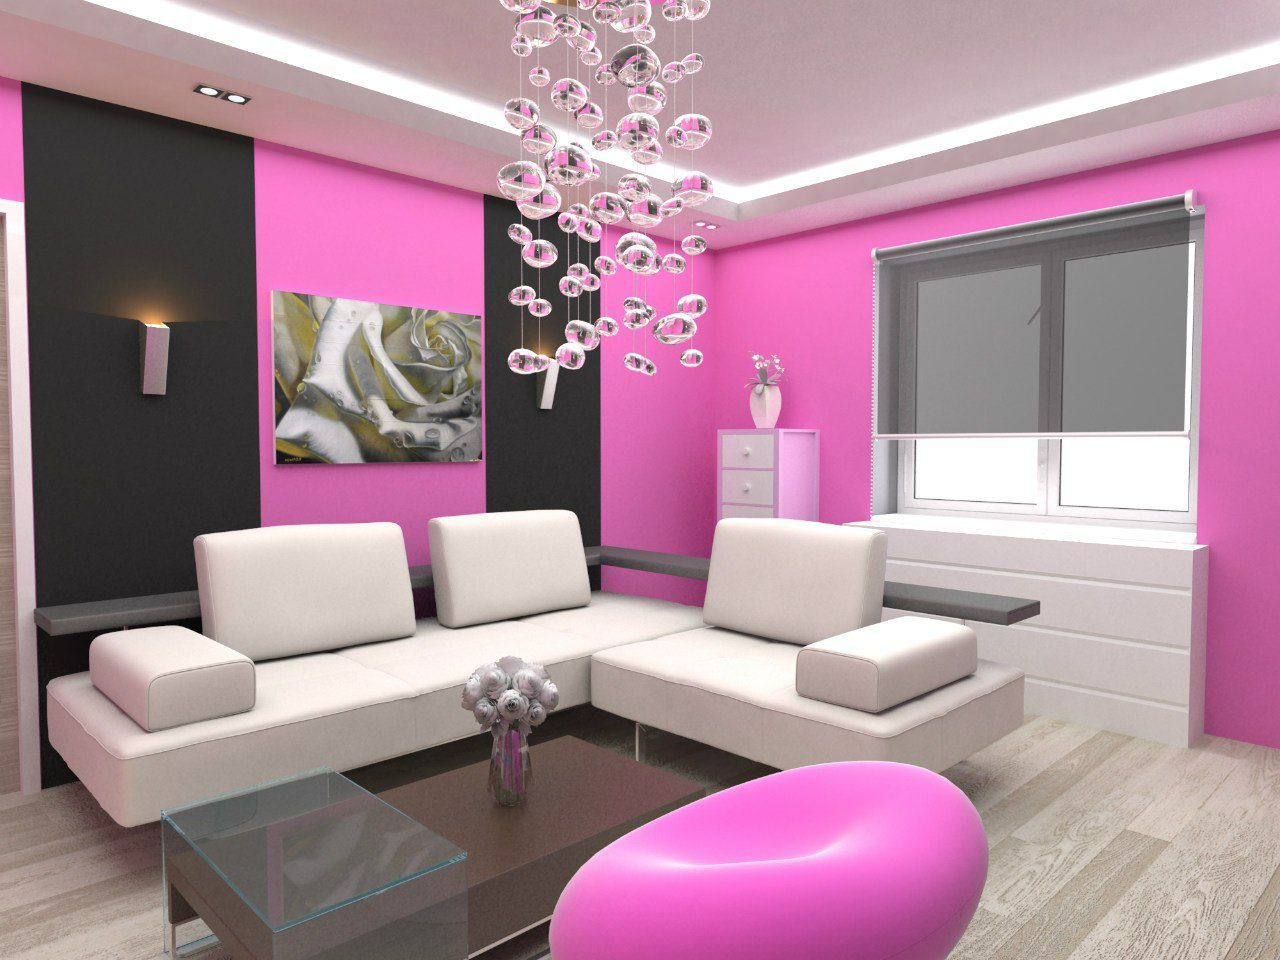 Wall Paintings Living Room Pretty Living Room Paint Idea With Pink And Black Painted Wall And